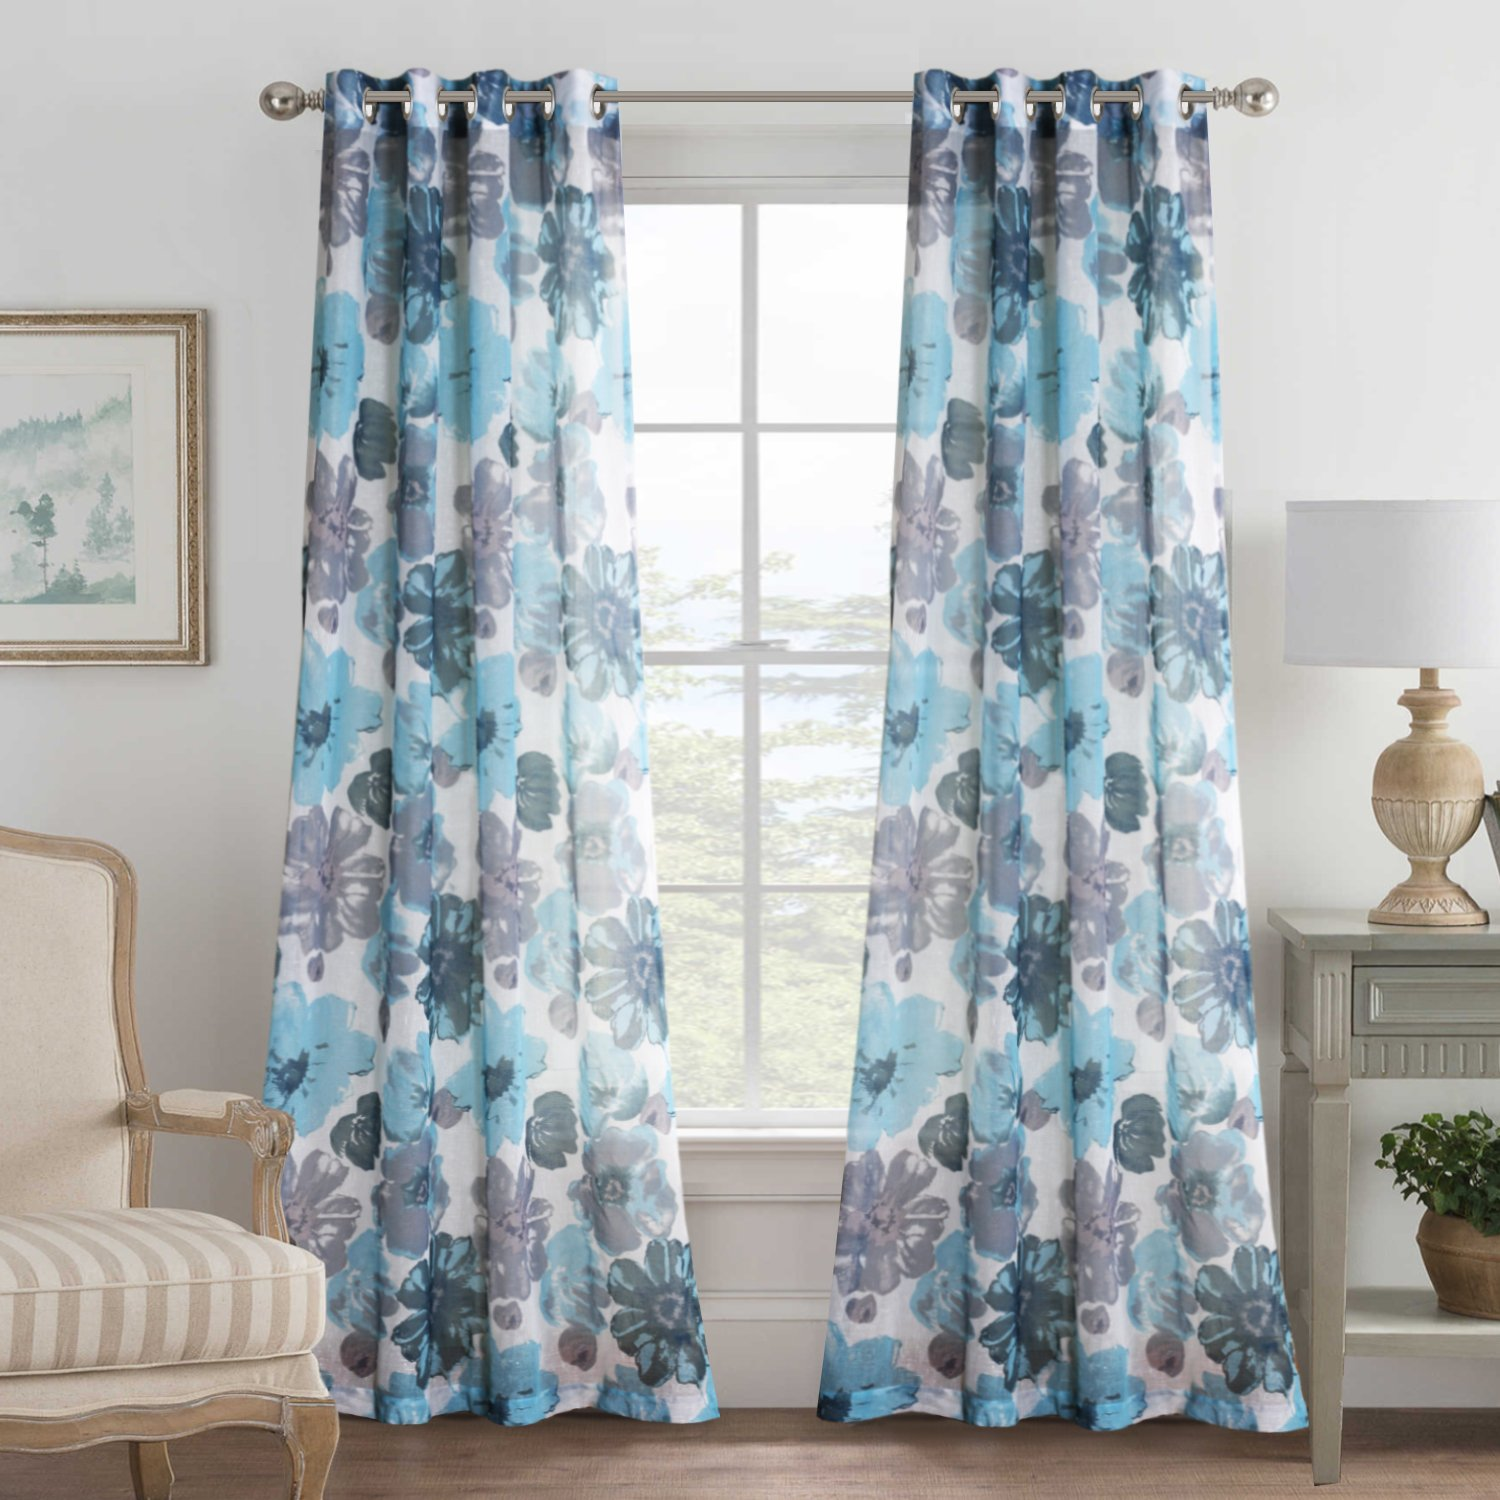 Curtains Natural Linen Blended Semi Sheers Bedroom